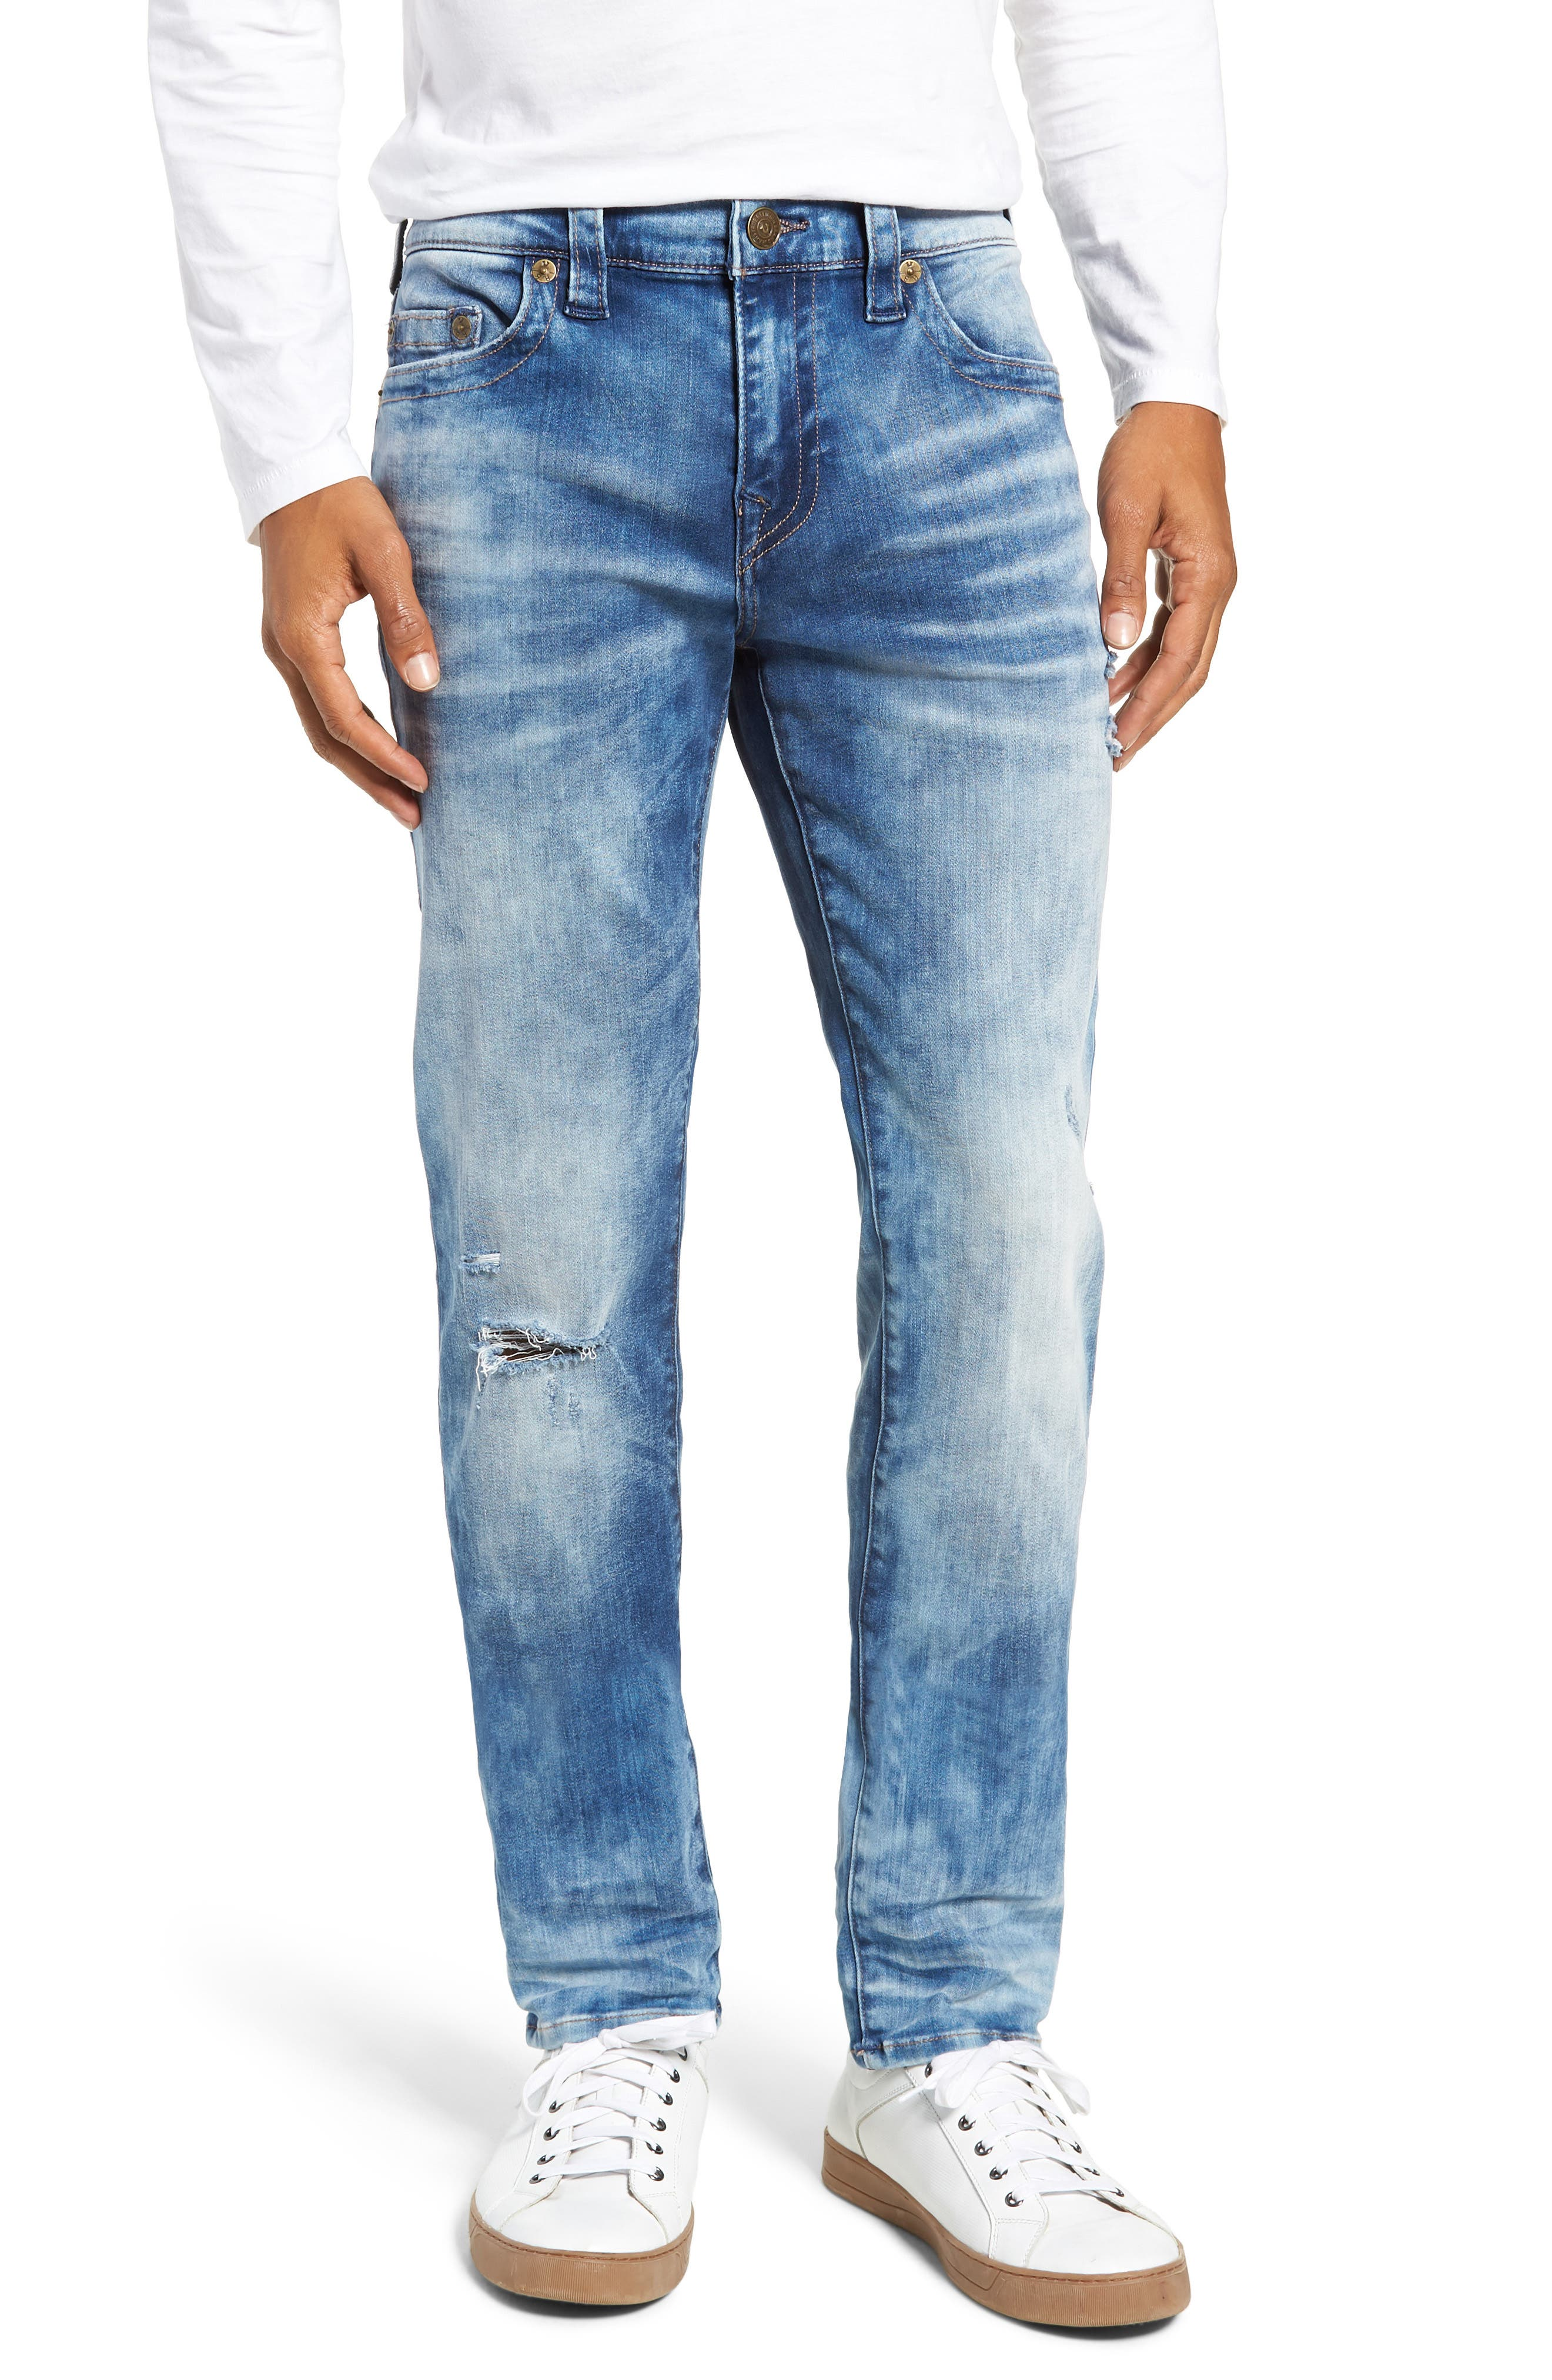 Rocco Skinny Fit Jeans,                         Main,                         color, BLUE RIOT